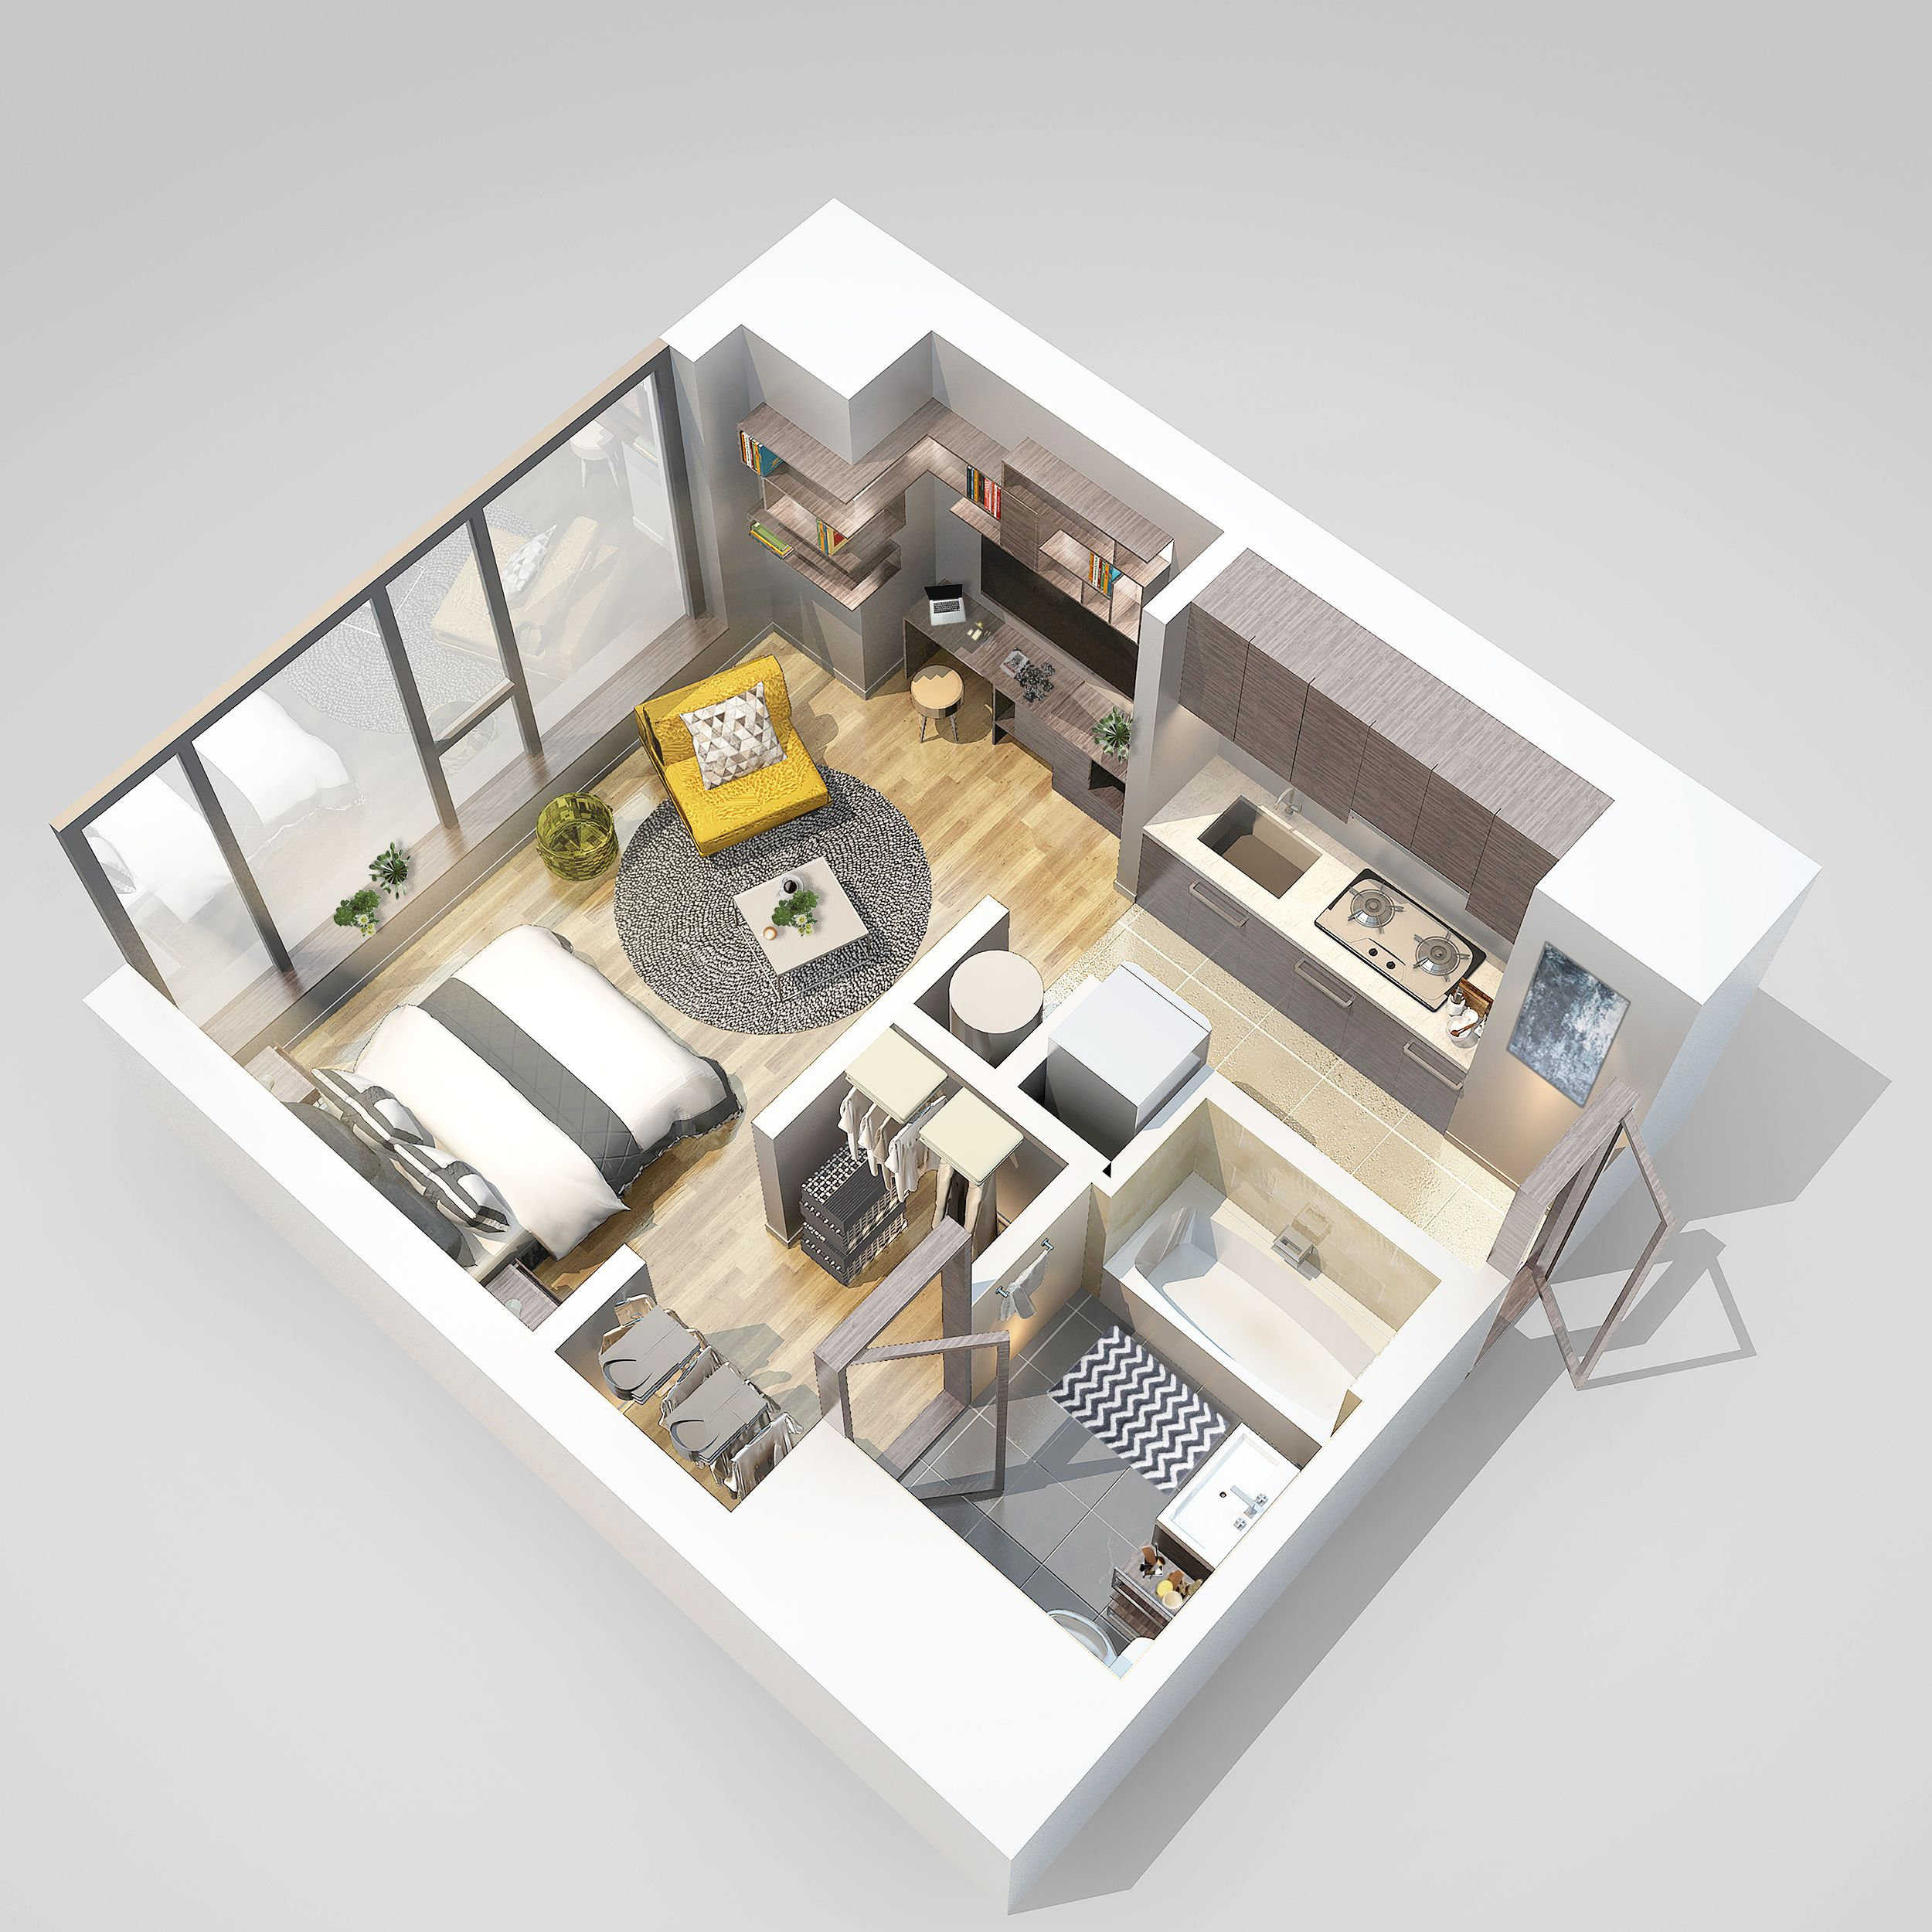 Pin By Tifanny Melinda On Grand Visualization Design Studio Apartment Floor Plans Sims House Plans Small House Design Plans